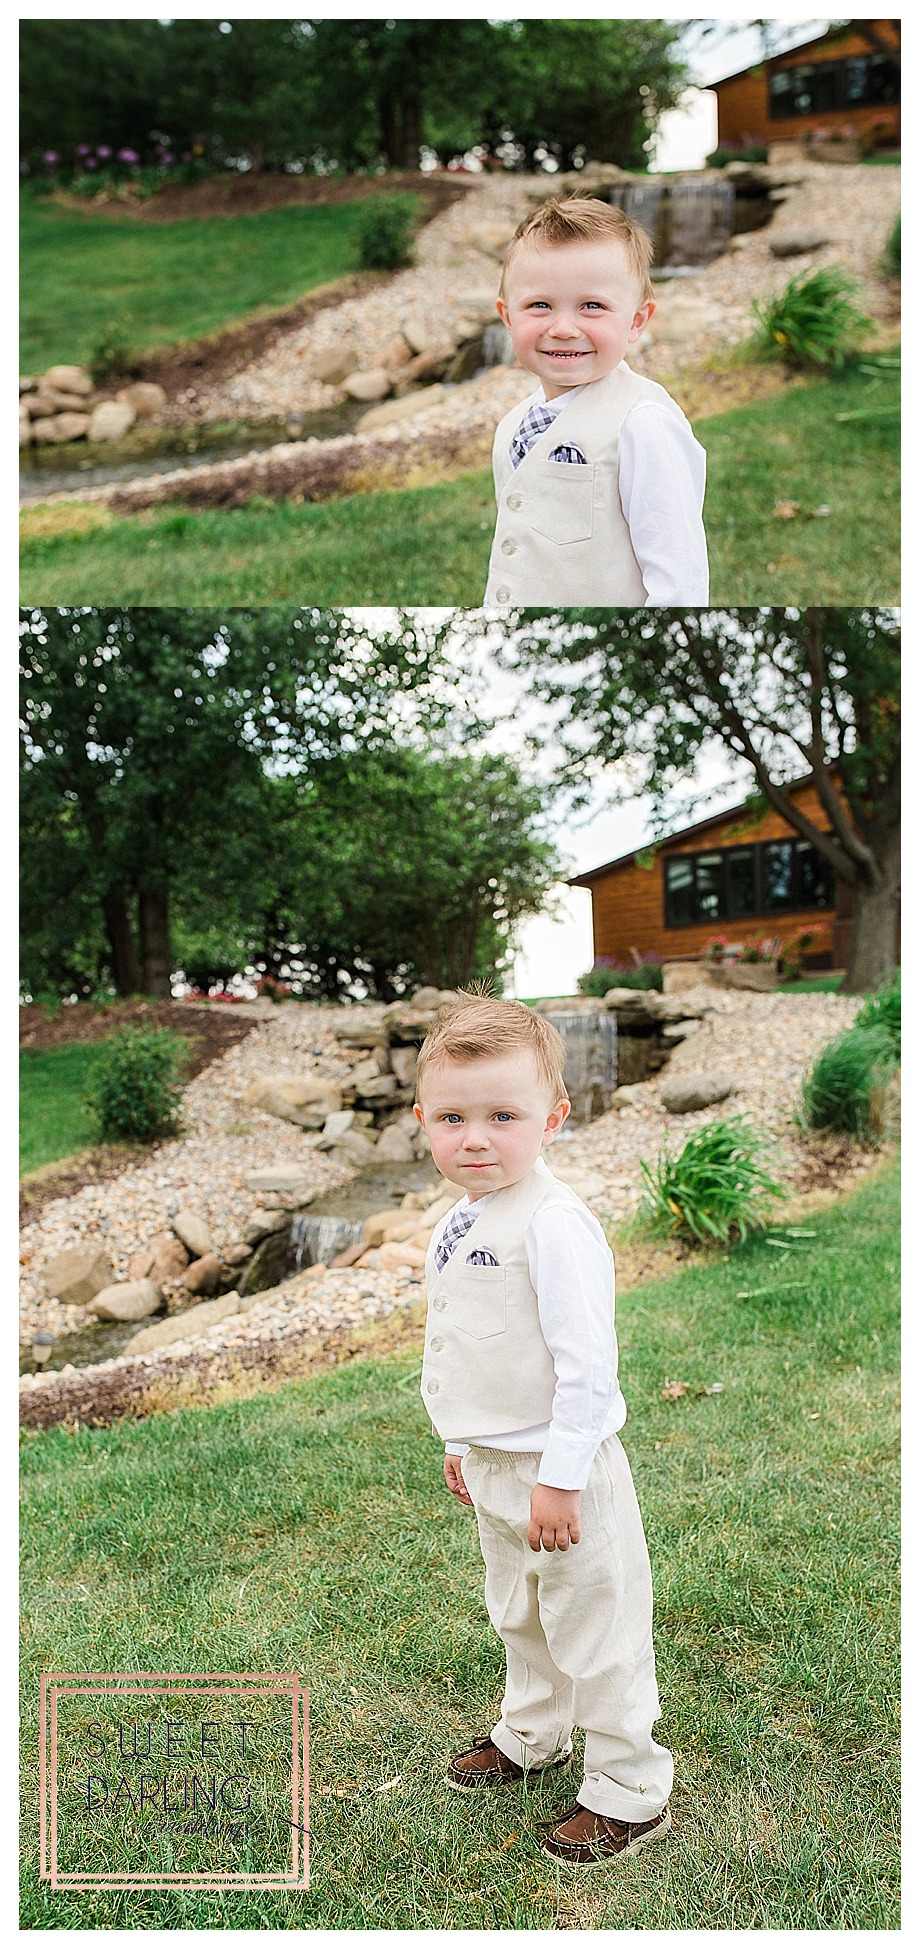 ring bearer in khaki suit by pond